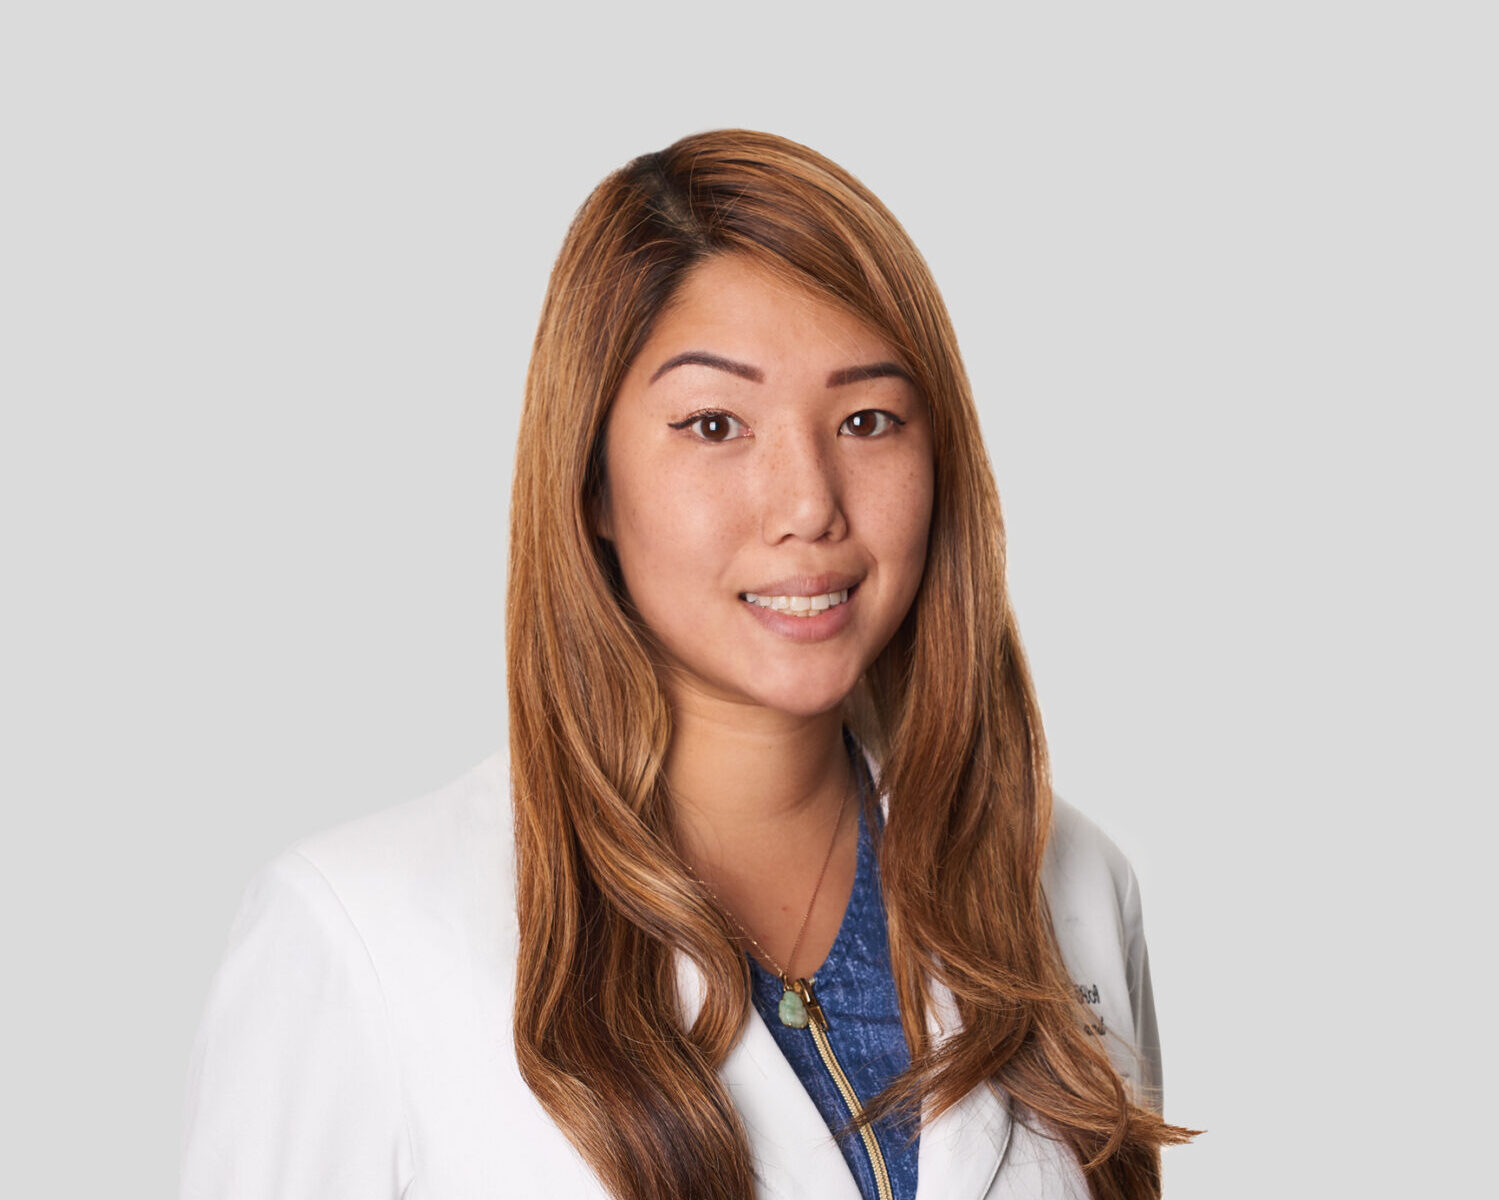 Dr Samantha Wong of the Animal Medical Center in New York City